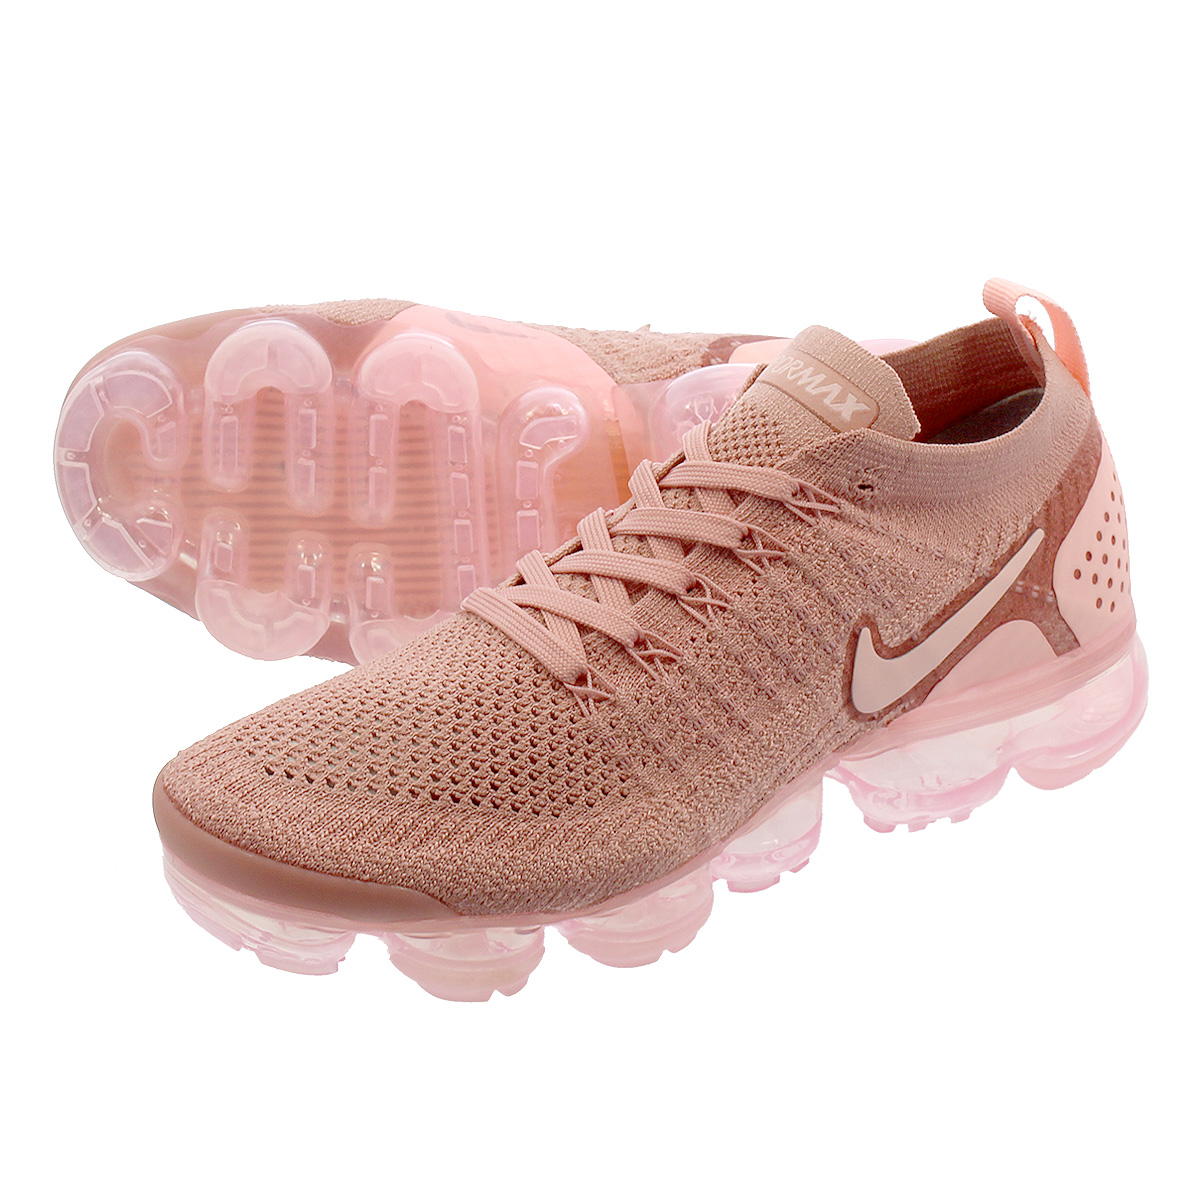 competitive price d93ba e74de NIKE WMNS AIR VAPORMAX FLYKNIT 2 Nike women vapor max fried food knit RUST  PINK  ...